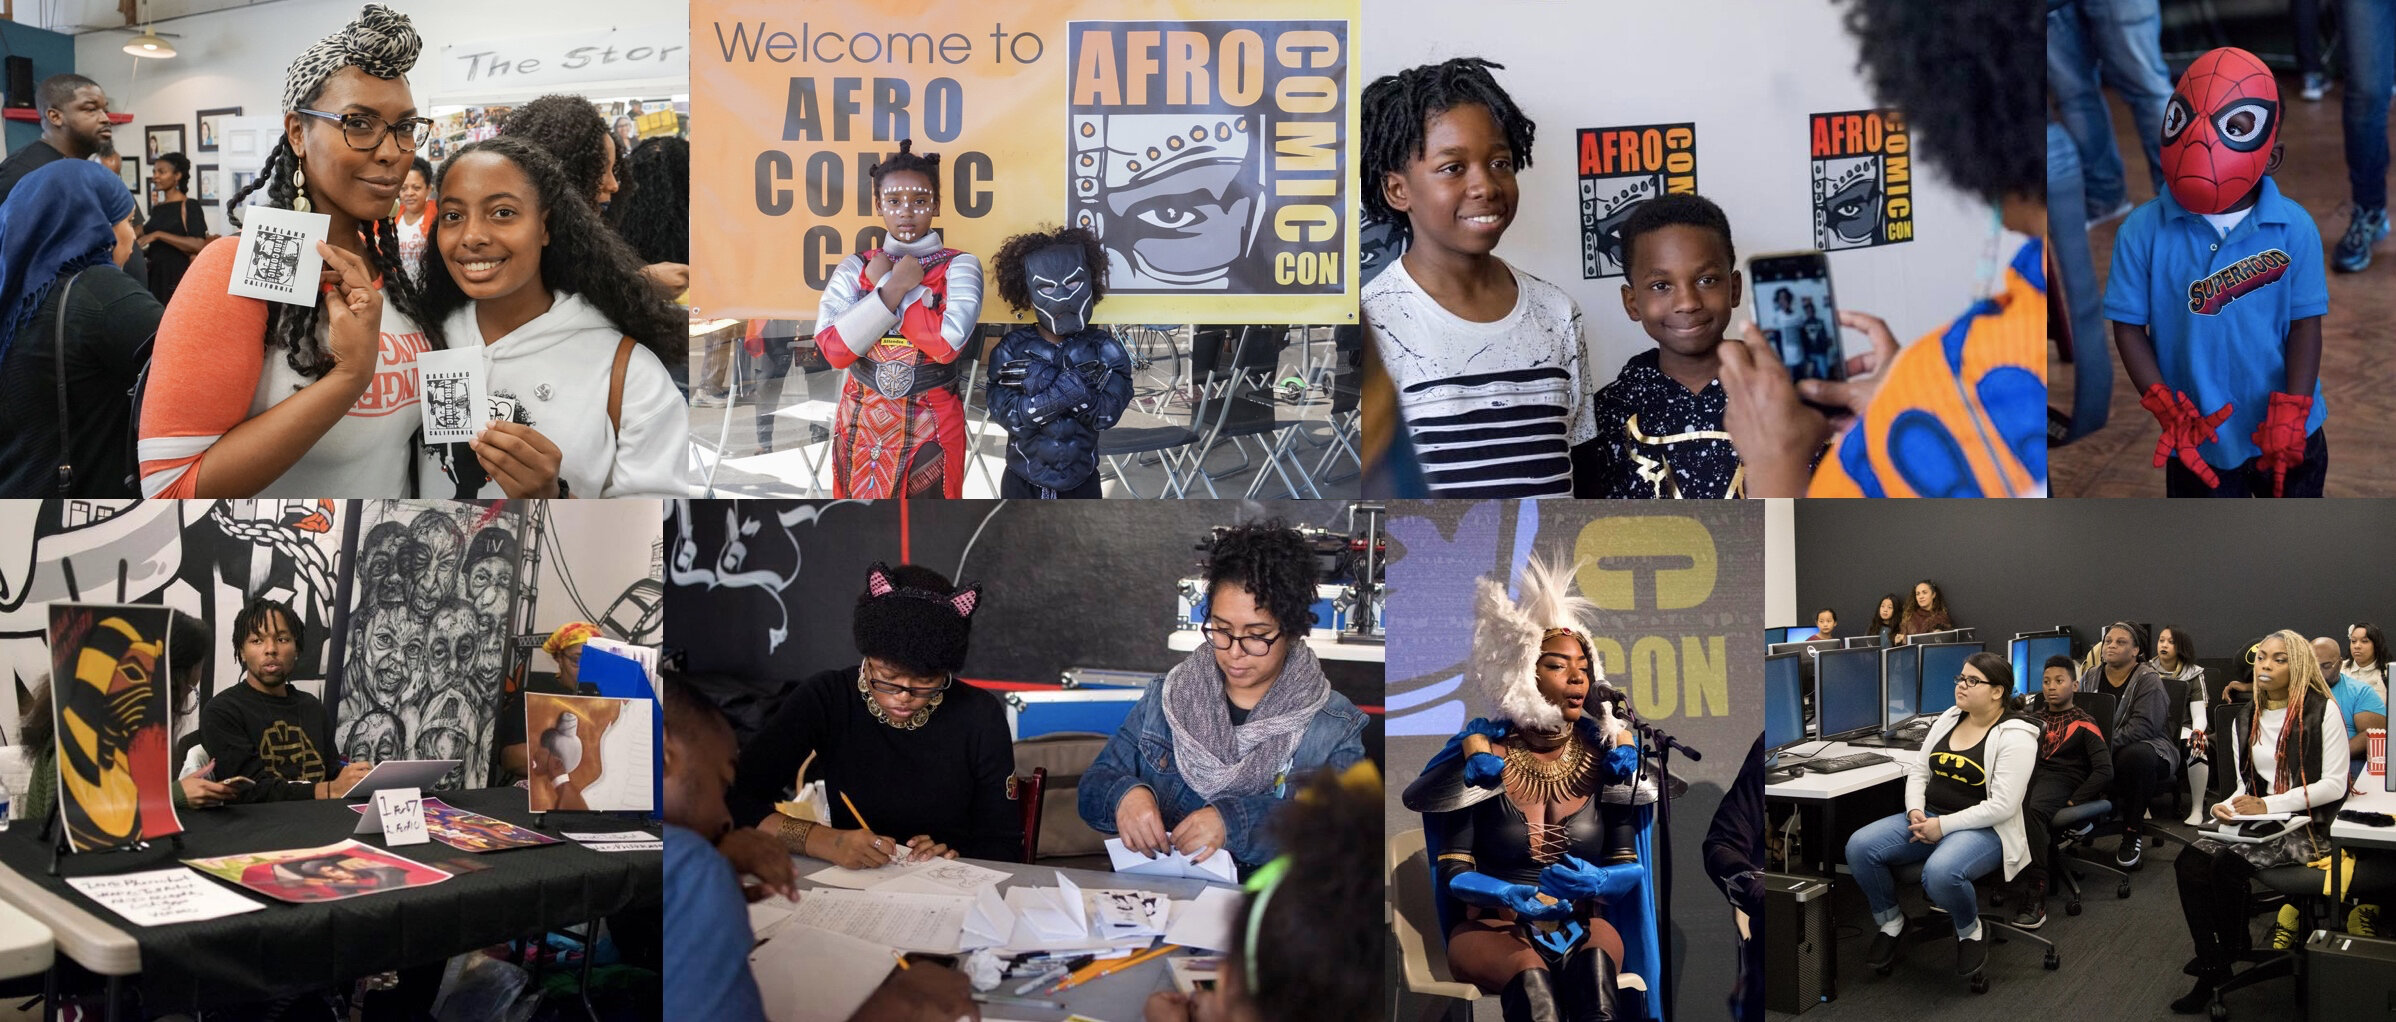 """""""(Convention-goers can) come away with a sense of ownership and collaboration."""" —AfroComicCon founder Michael James. (Photo: Afro ComicCon)"""